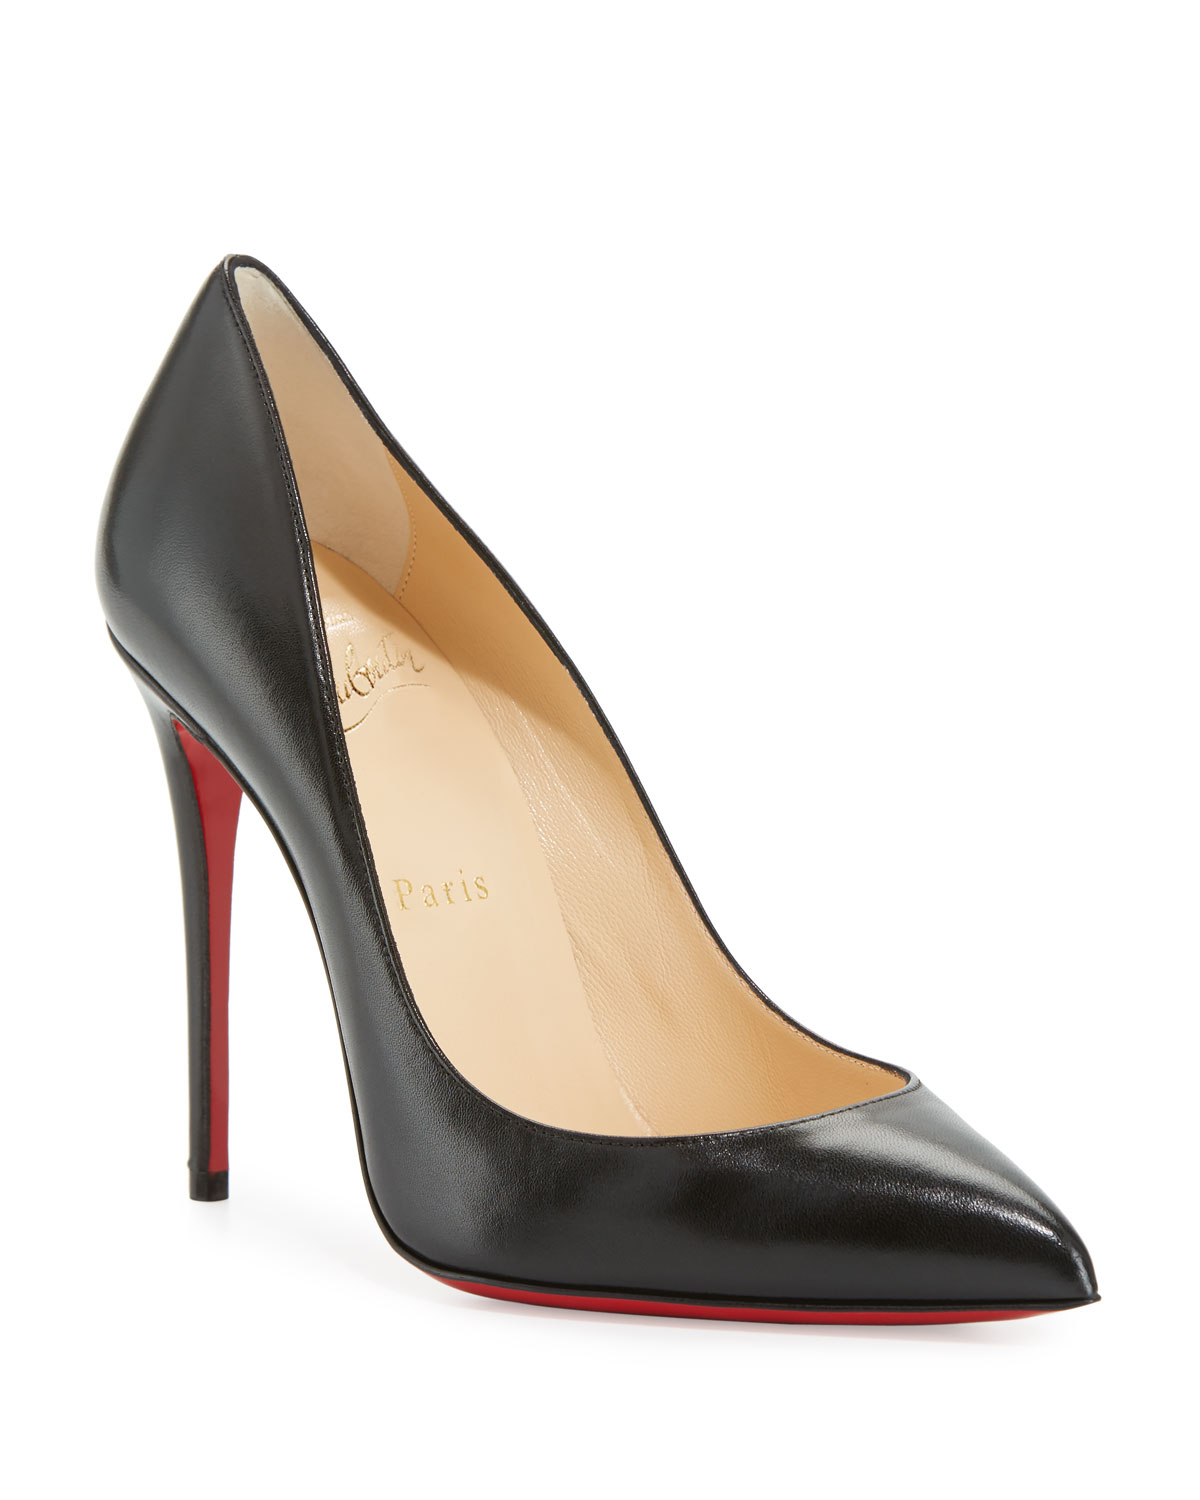 43a14d1de1fb Christian LouboutinPigalle Follies Leather 100mm Red Sole Pumps